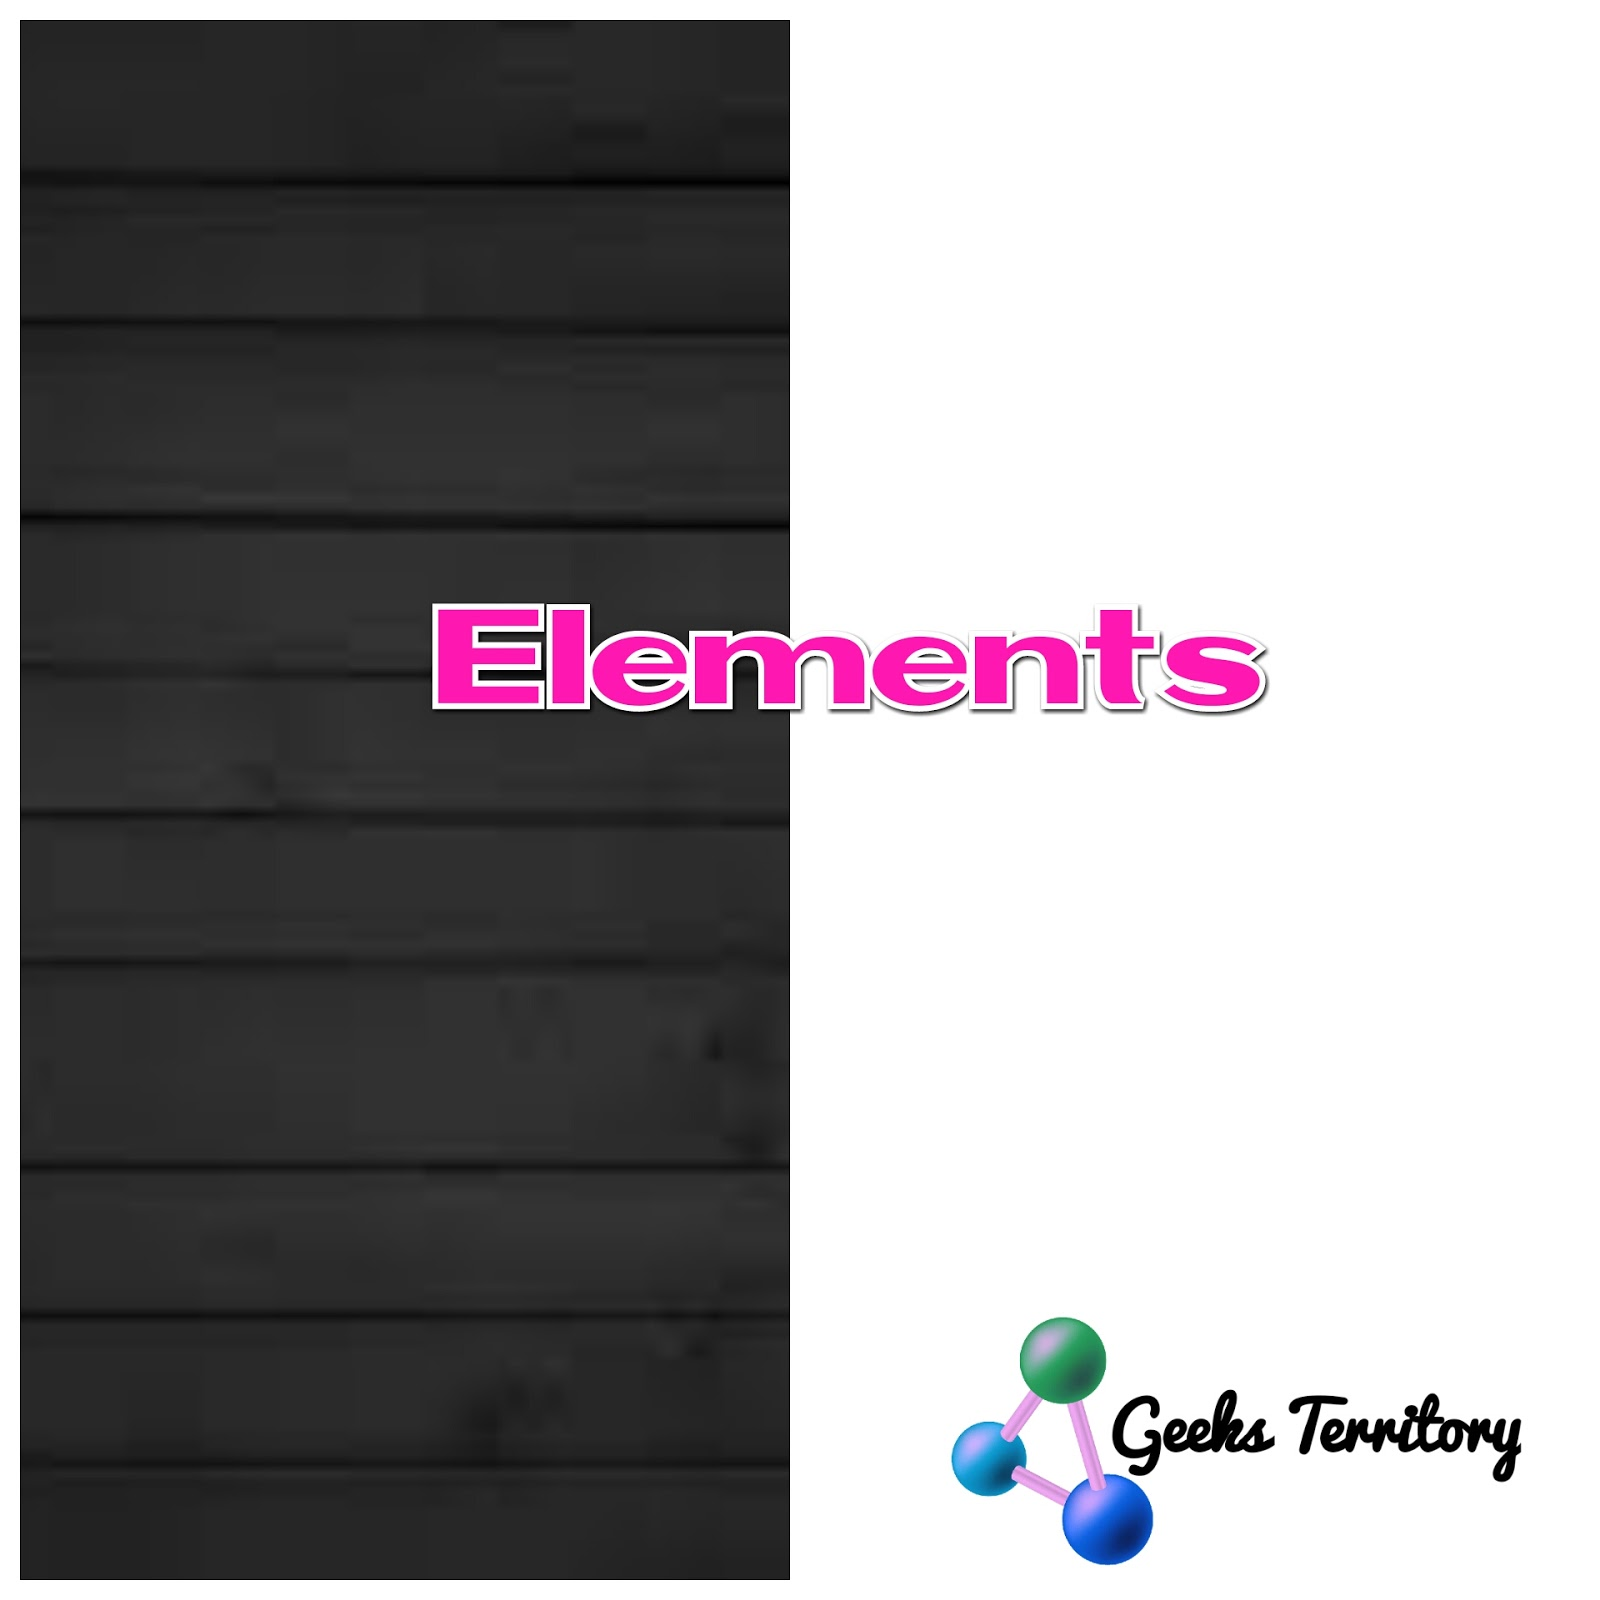 Elements Metals Valency Numbers And Symbols